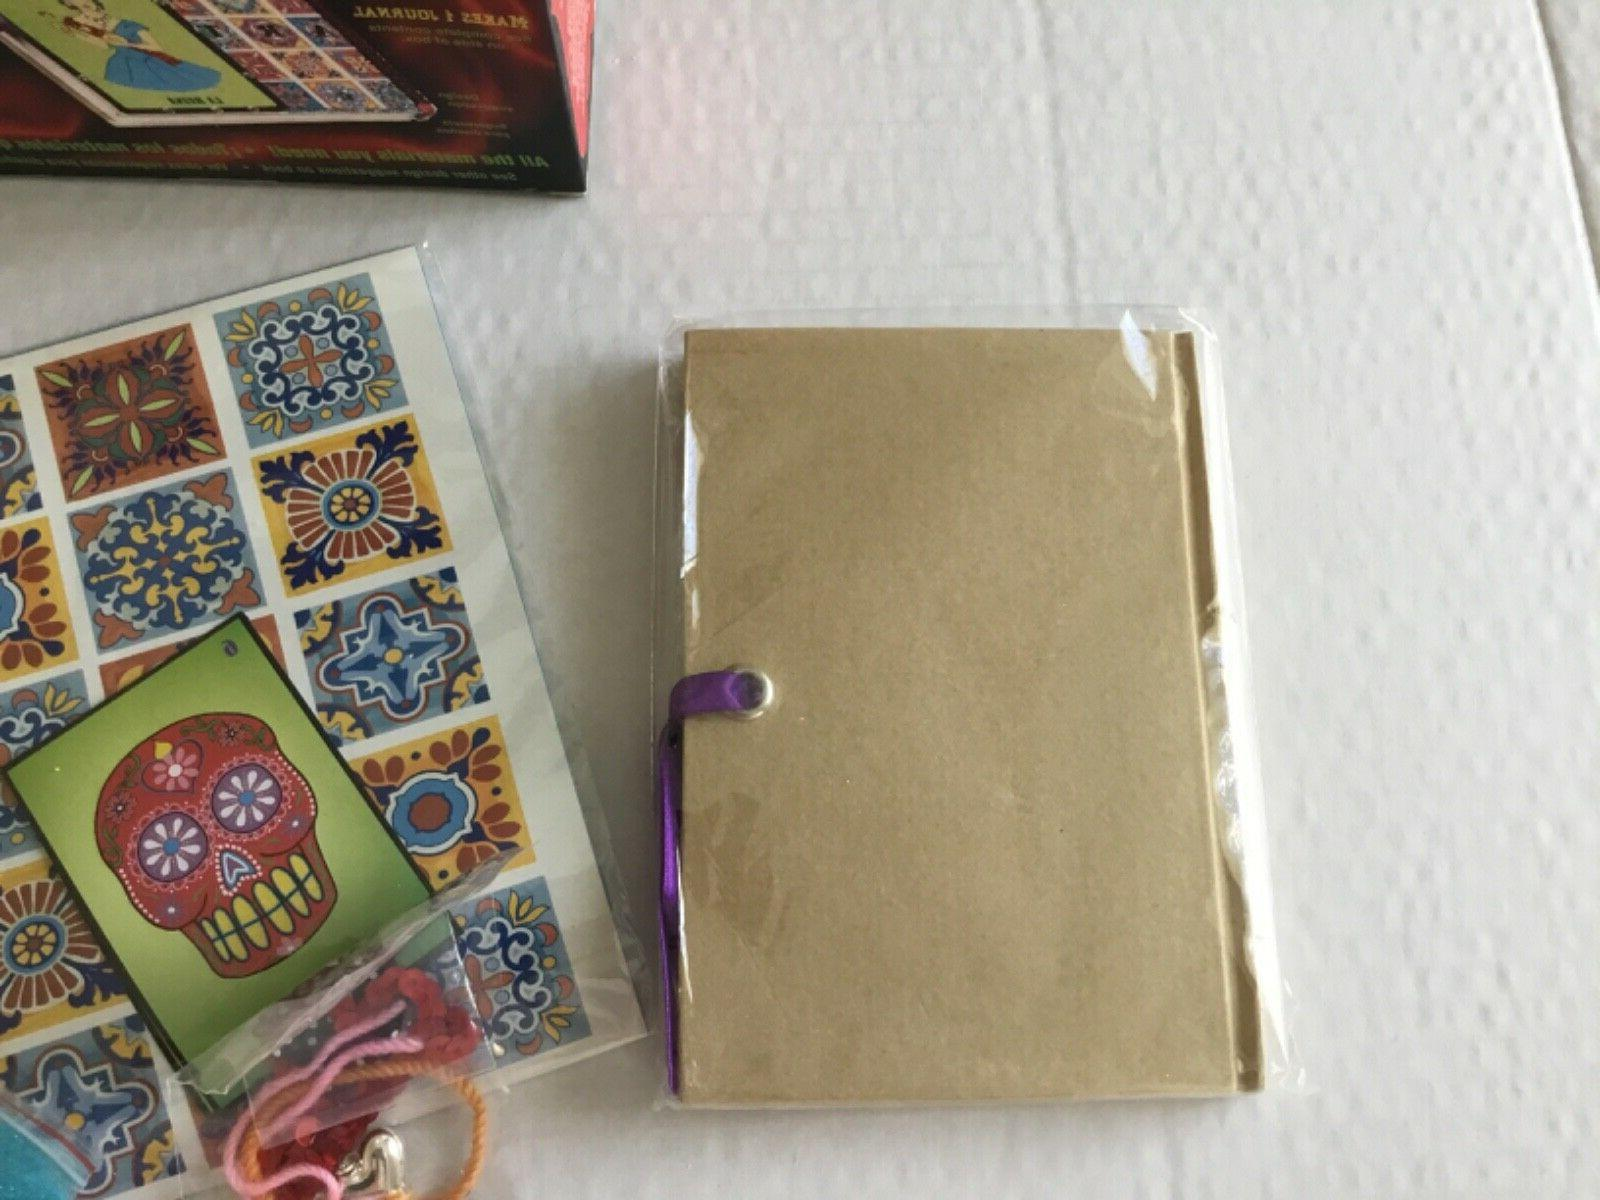 COLLAGE KIT By Crafty Chica Workshop-In-A-Box Makes 1 Journal